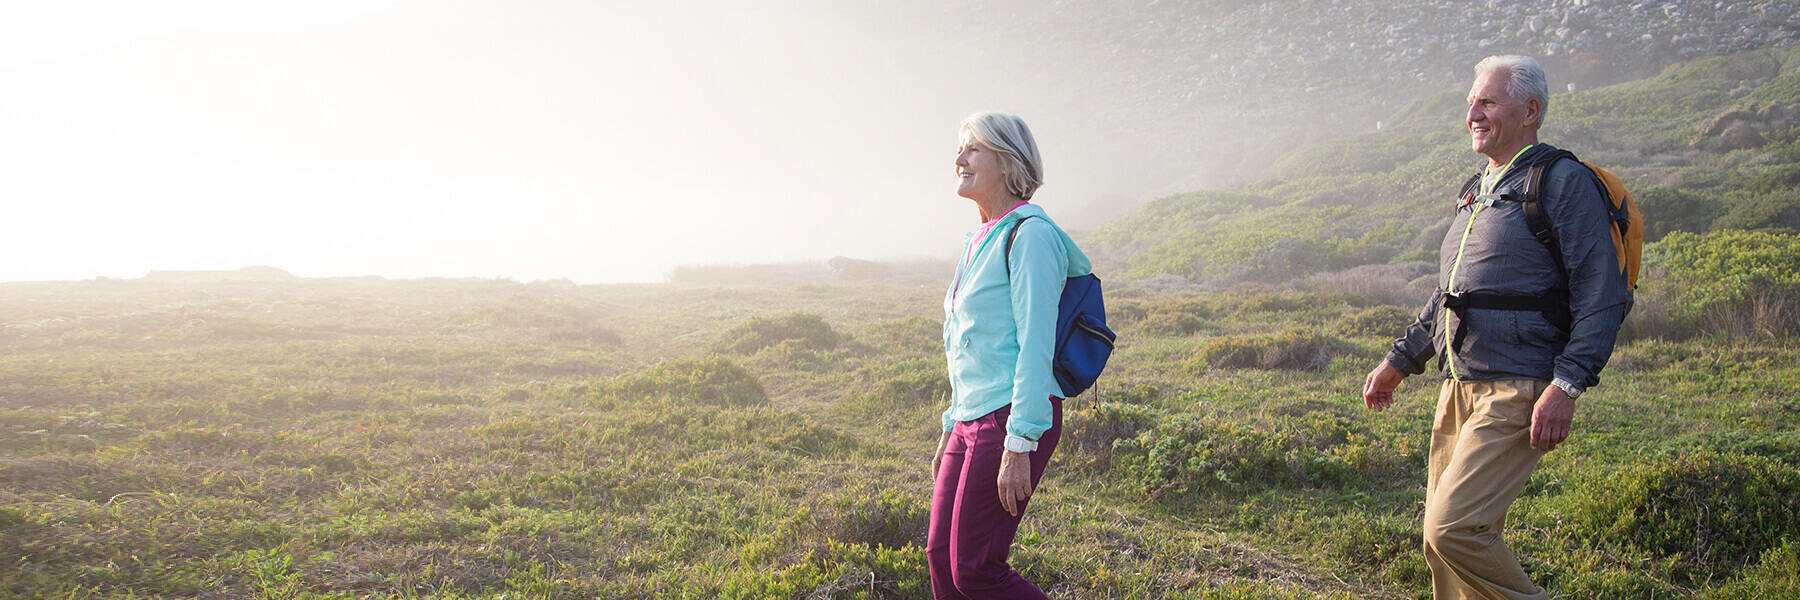 Mature man and woman wearing backpacks hike down a grassy hill with fog and rocks in the background